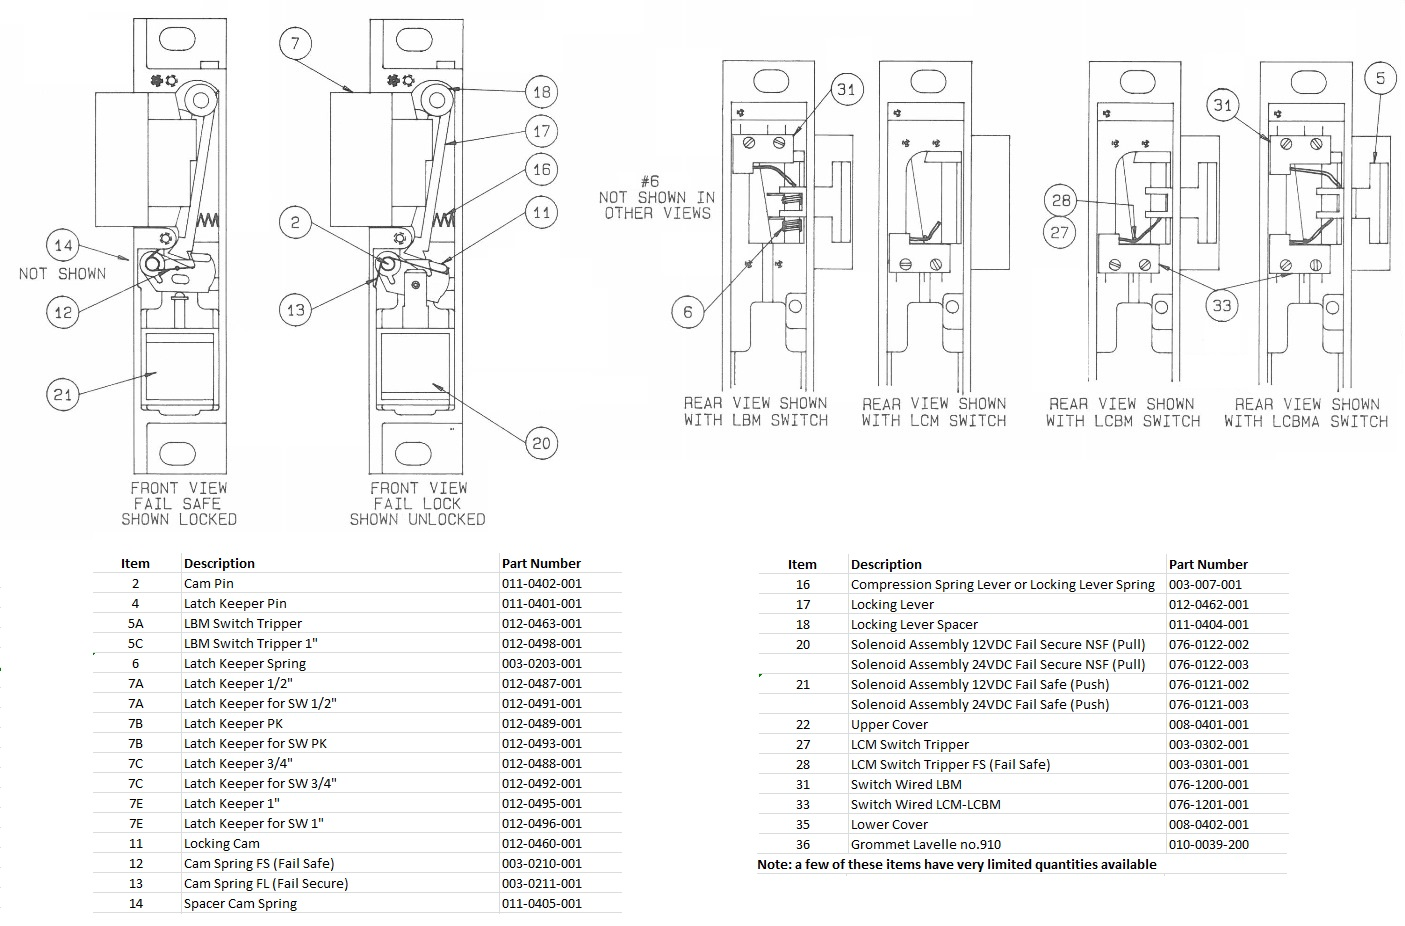 Folger Adam 300 Parts Diagram available